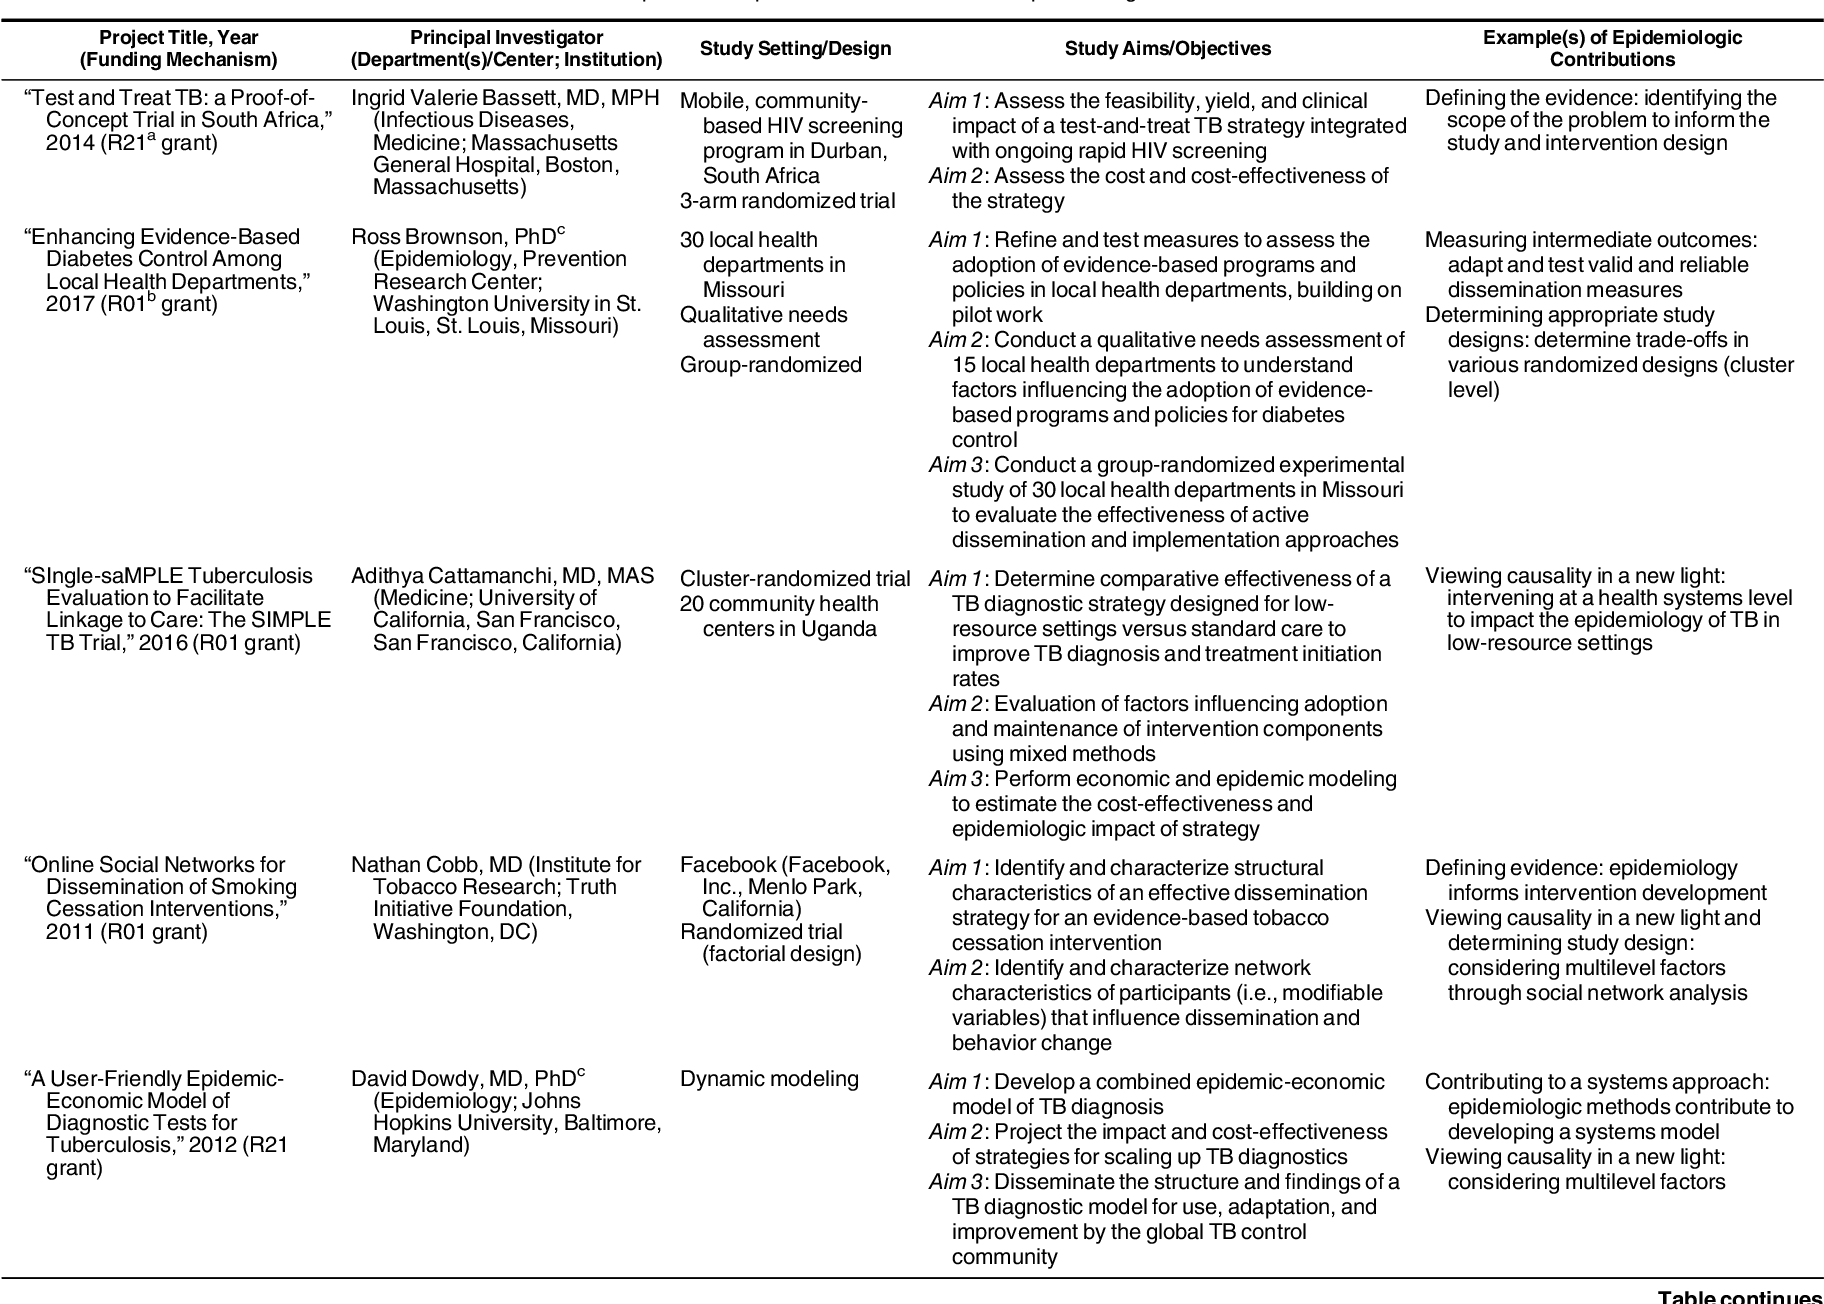 Table 2 from Opportunities for Epidemiologists in Implementation